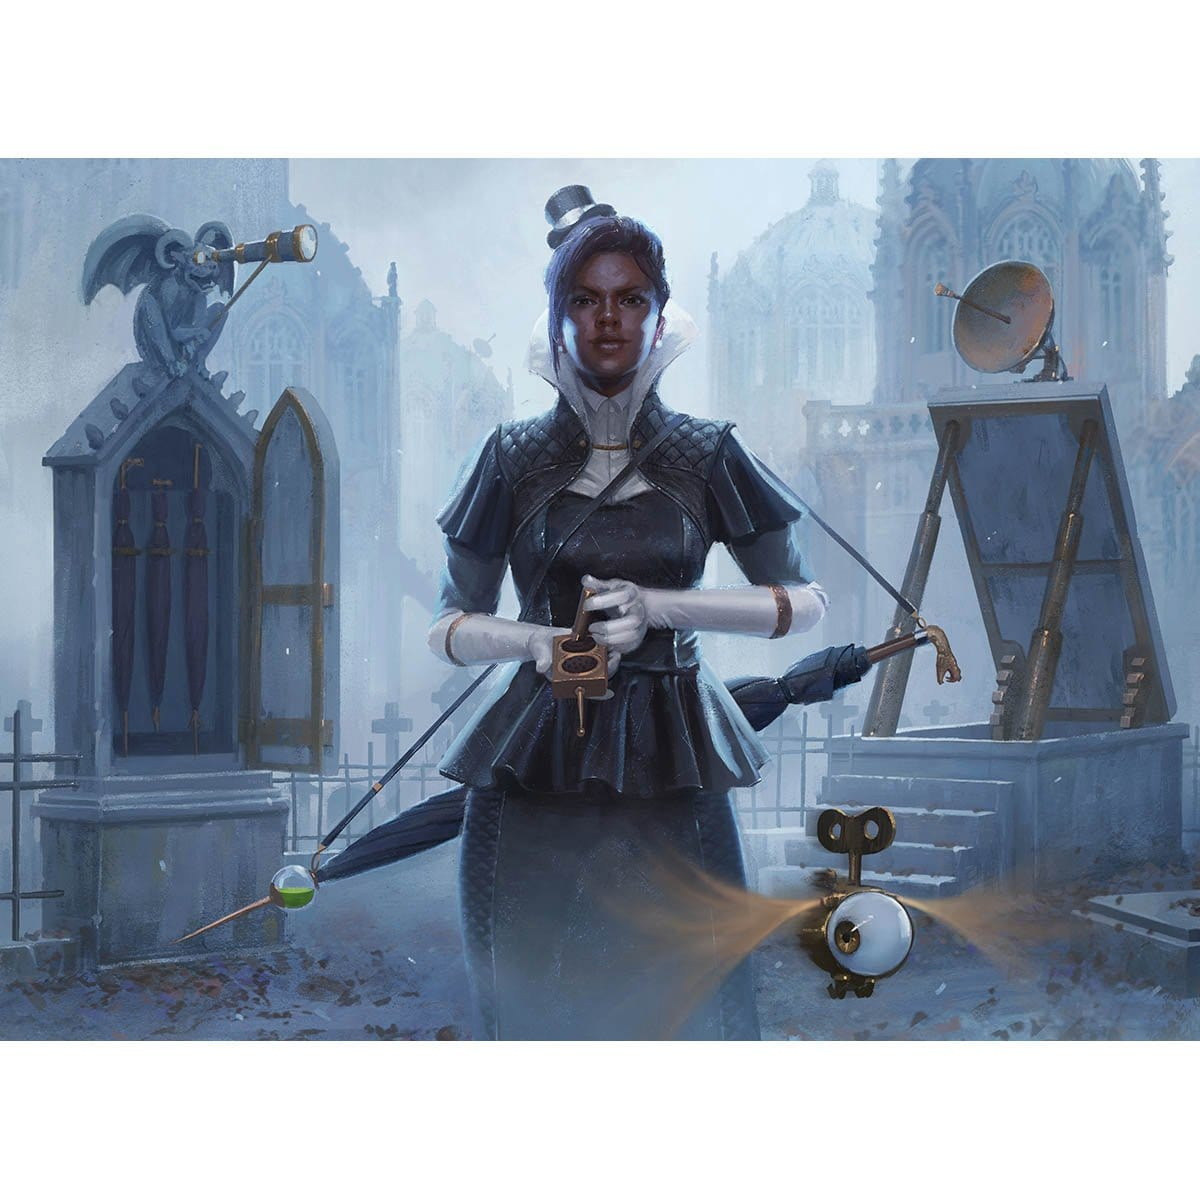 Graveyard Busybody Print - Print - Original Magic Art - Accessories for Magic the Gathering and other card games